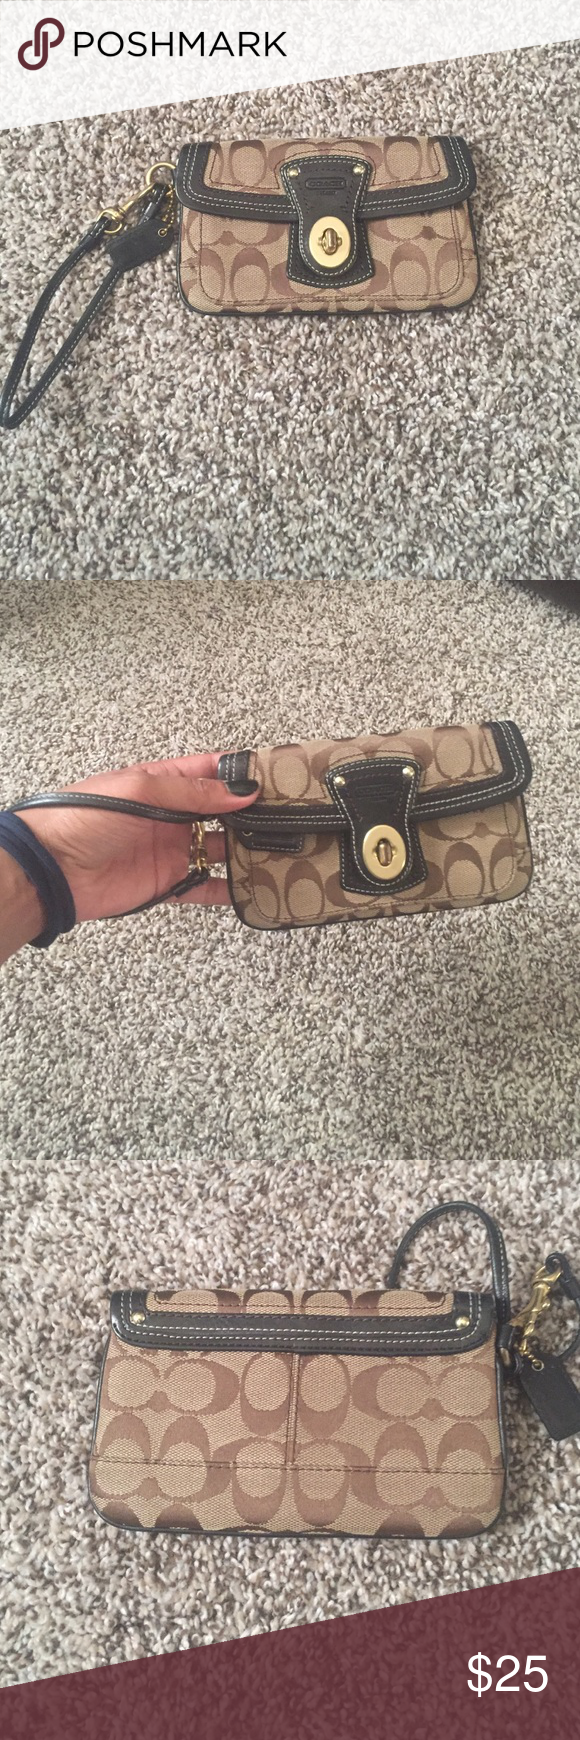 988ab146c97 Authentic COACH wristlet   Key lock, Coach wristlet and Coach bags